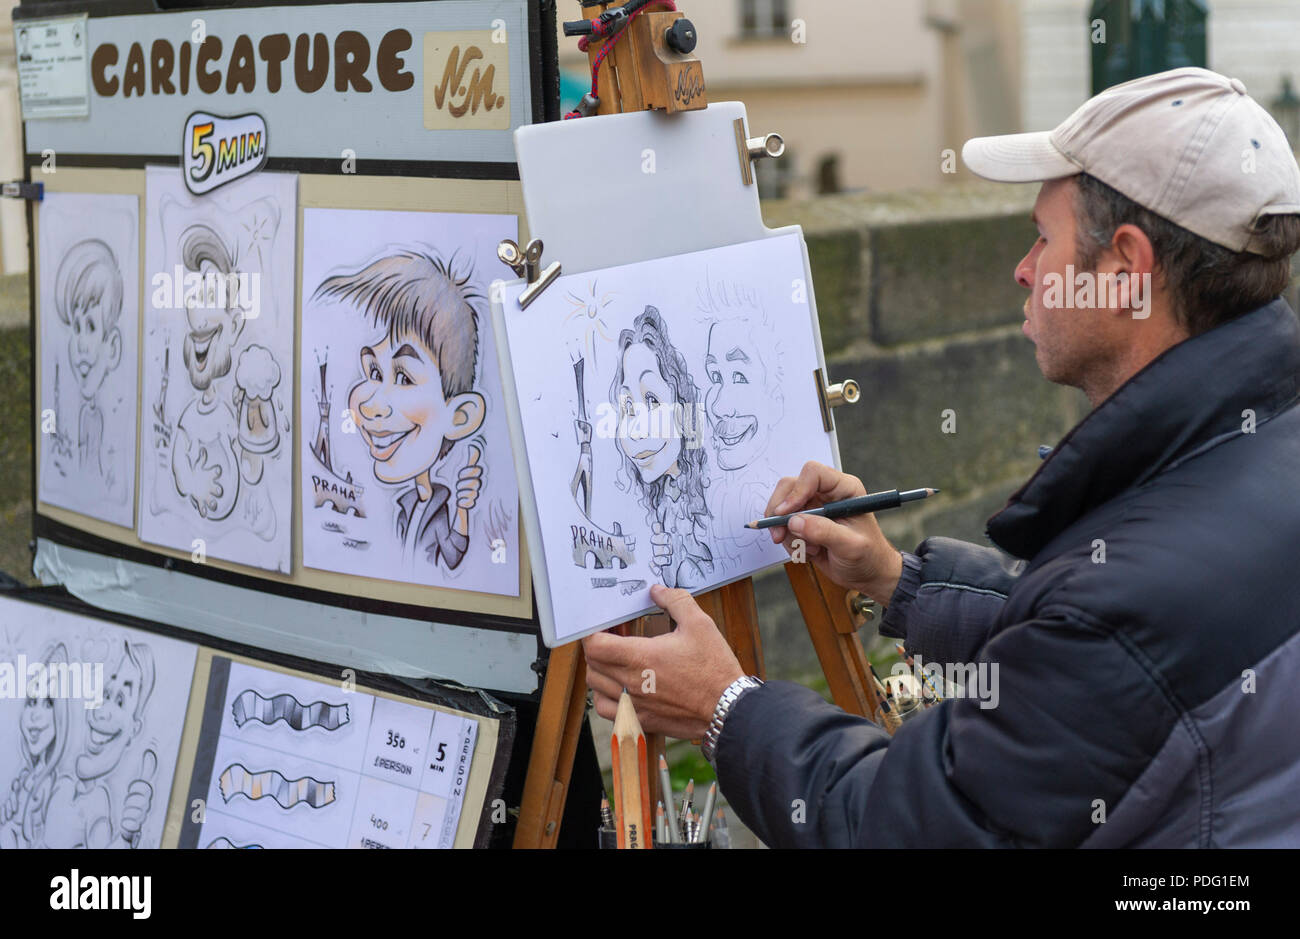 Street Caricature Artist High Resolution Stock Photography And Images Alamy